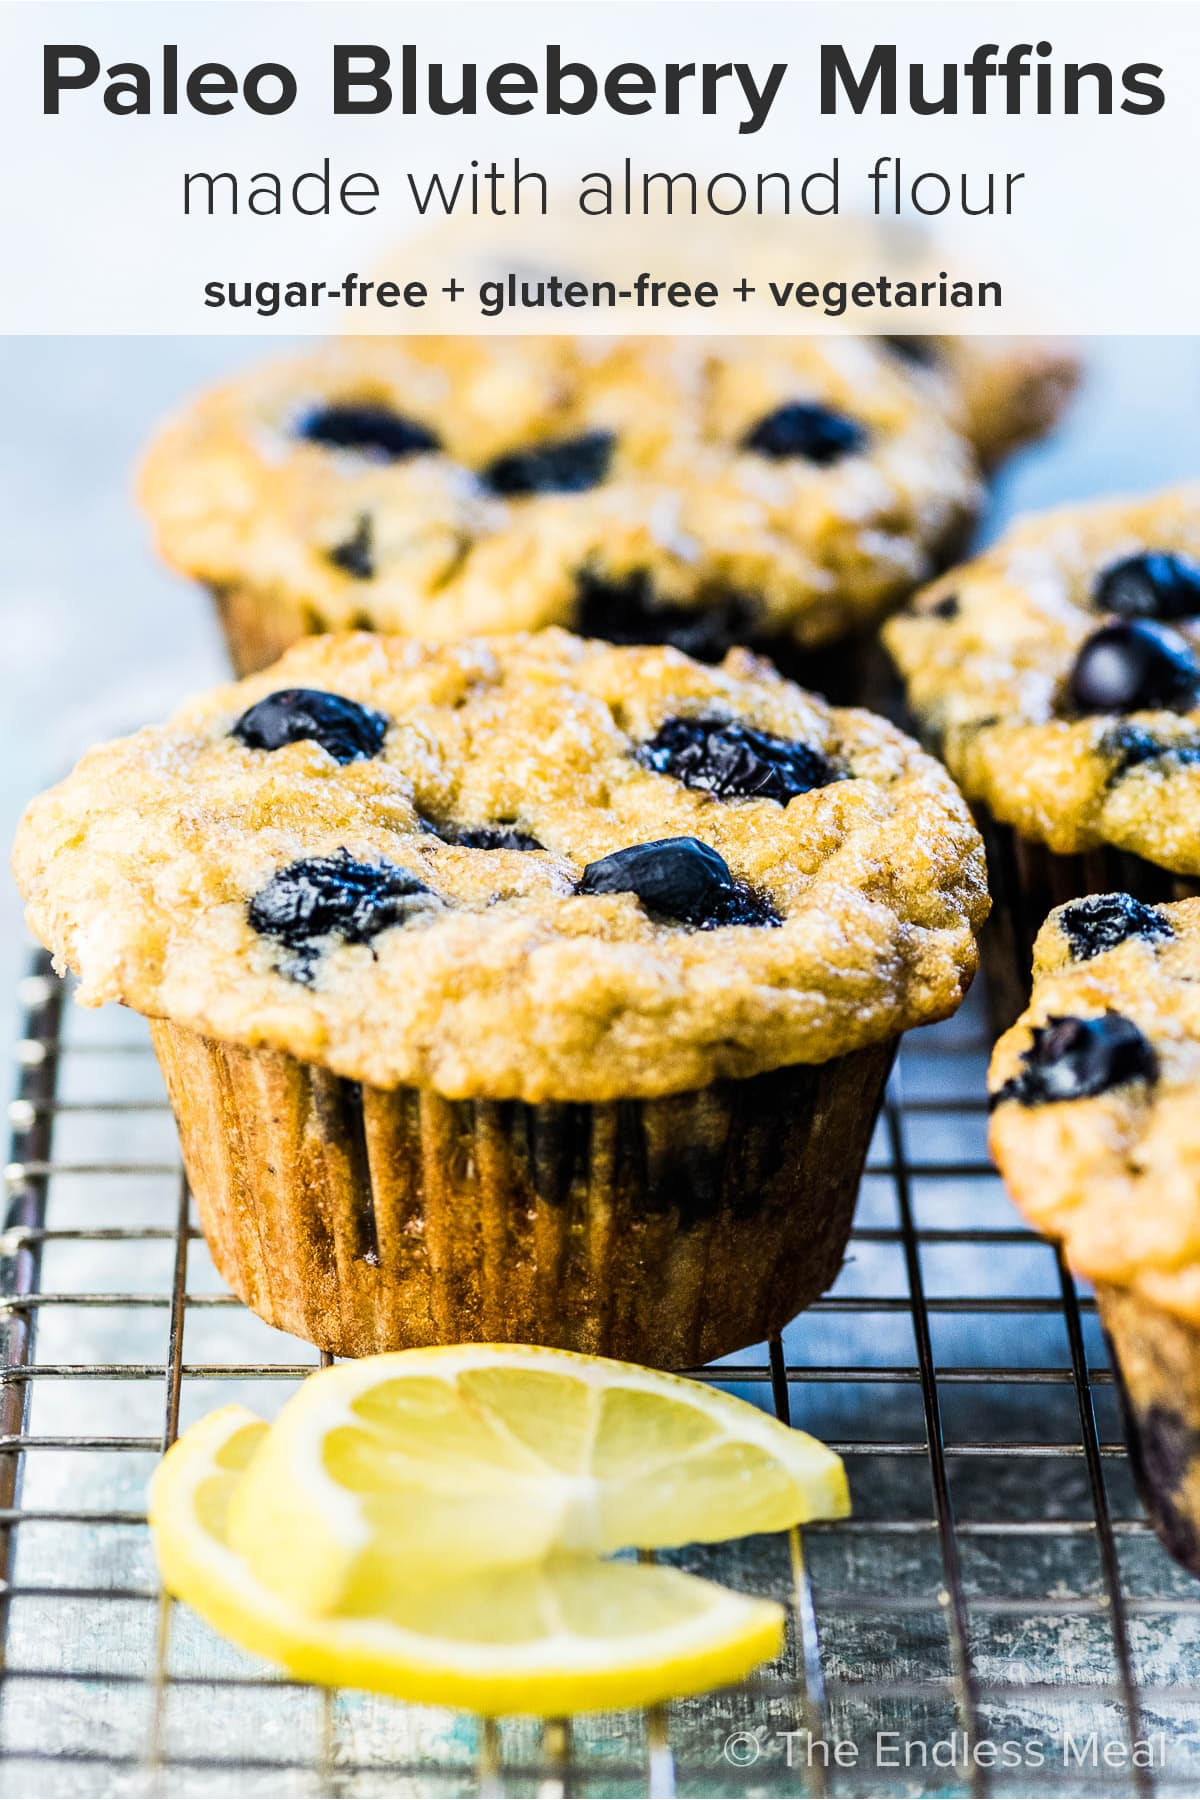 Paleo blueberry muffins with the recipe title on top of the picture.